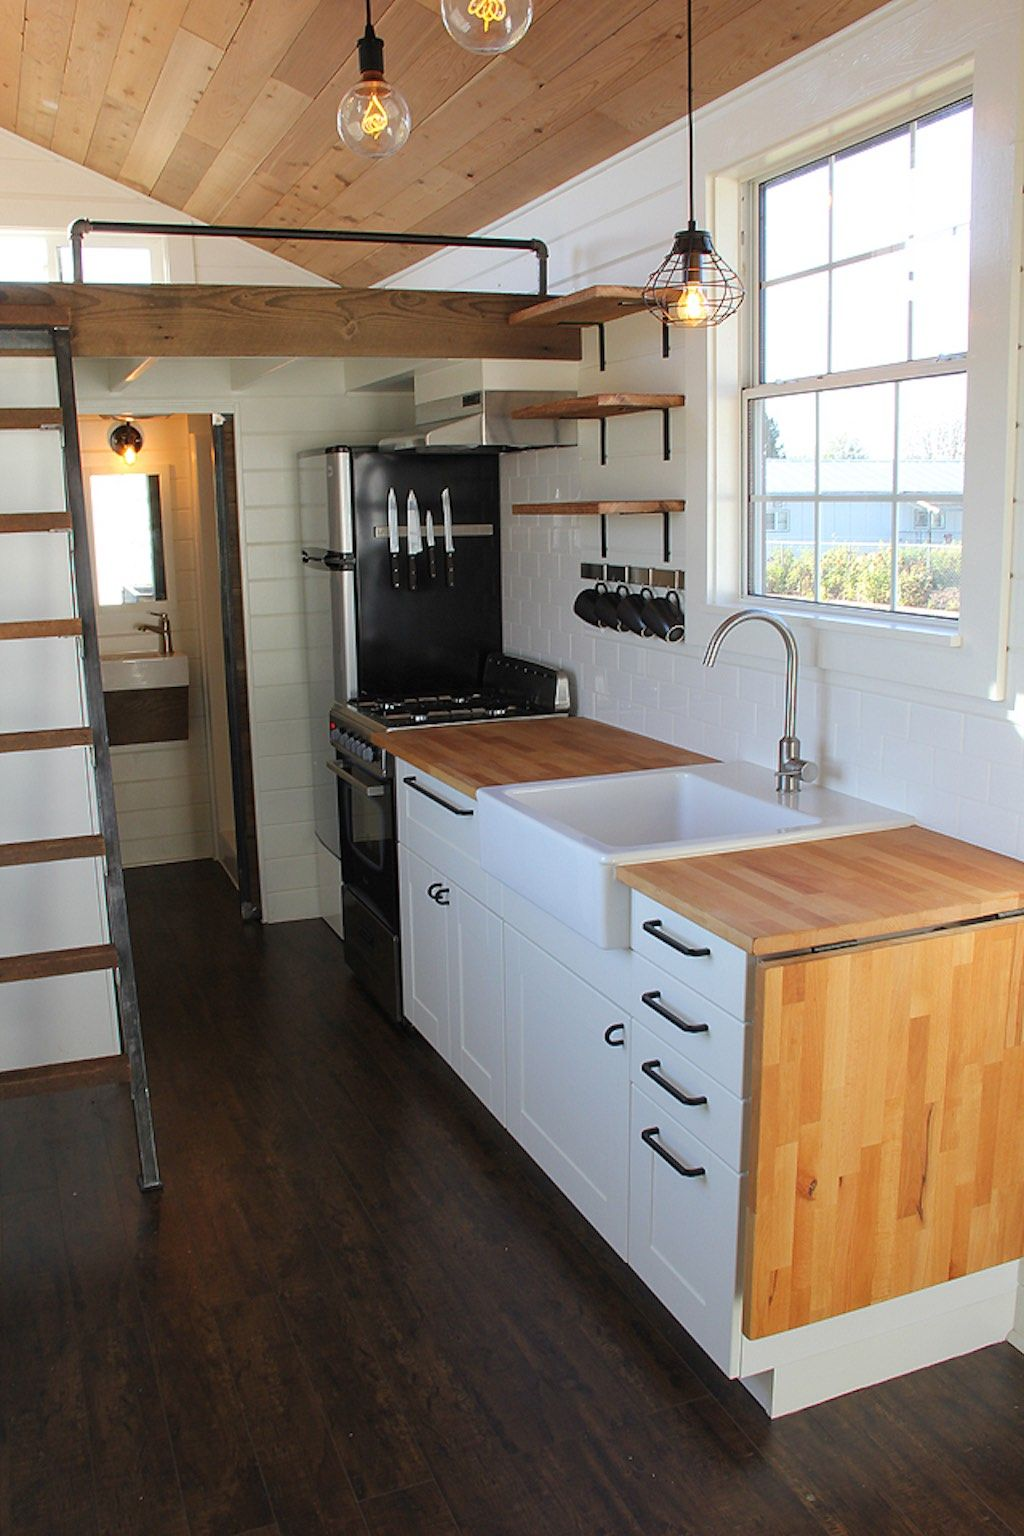 Rustic Industrial | Tiny House Living | Home kitchens ...